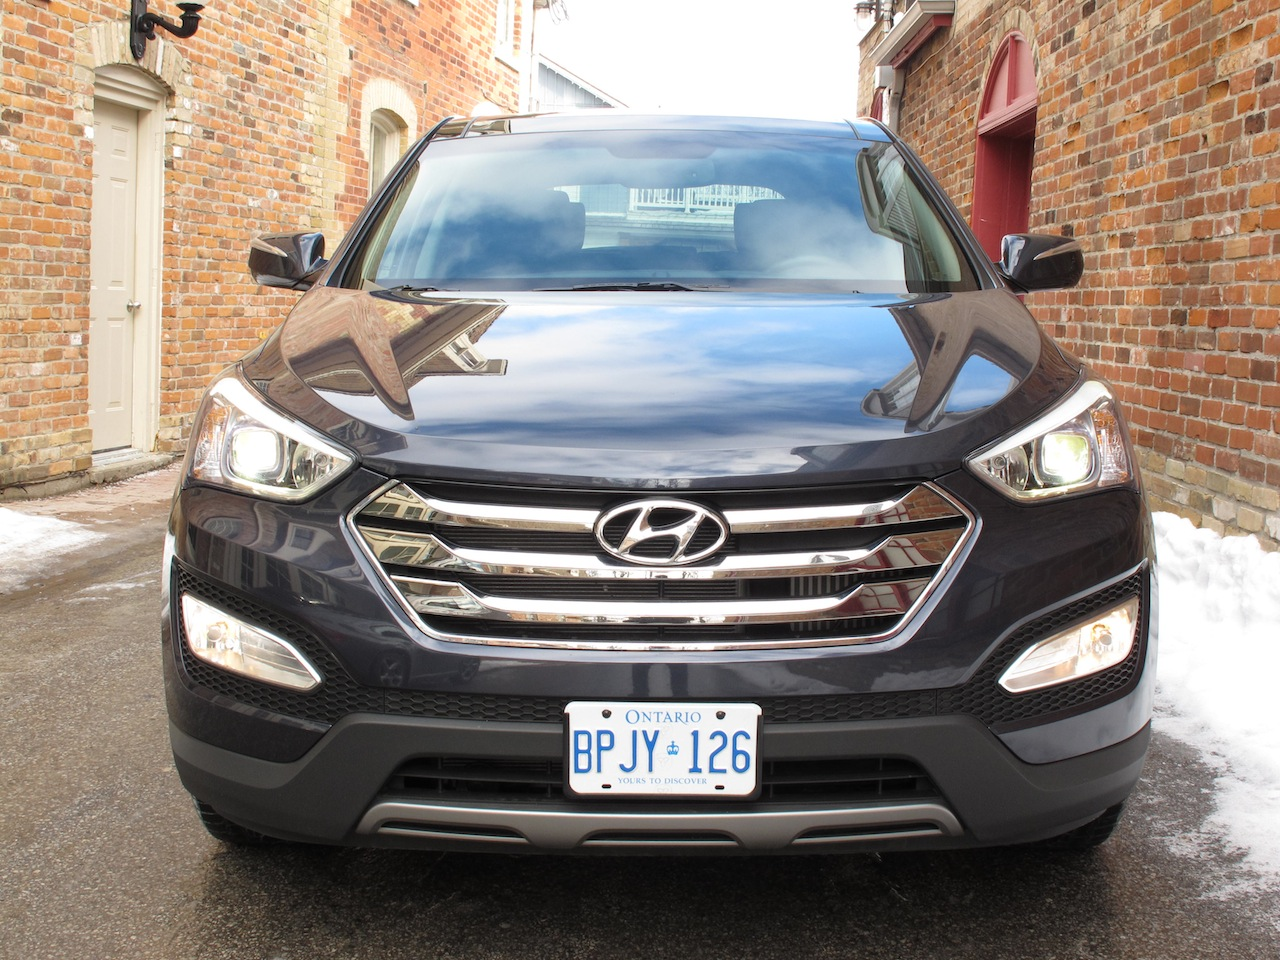 2013 Hyundai Sante Fe Sport Cars Photos Test Drives